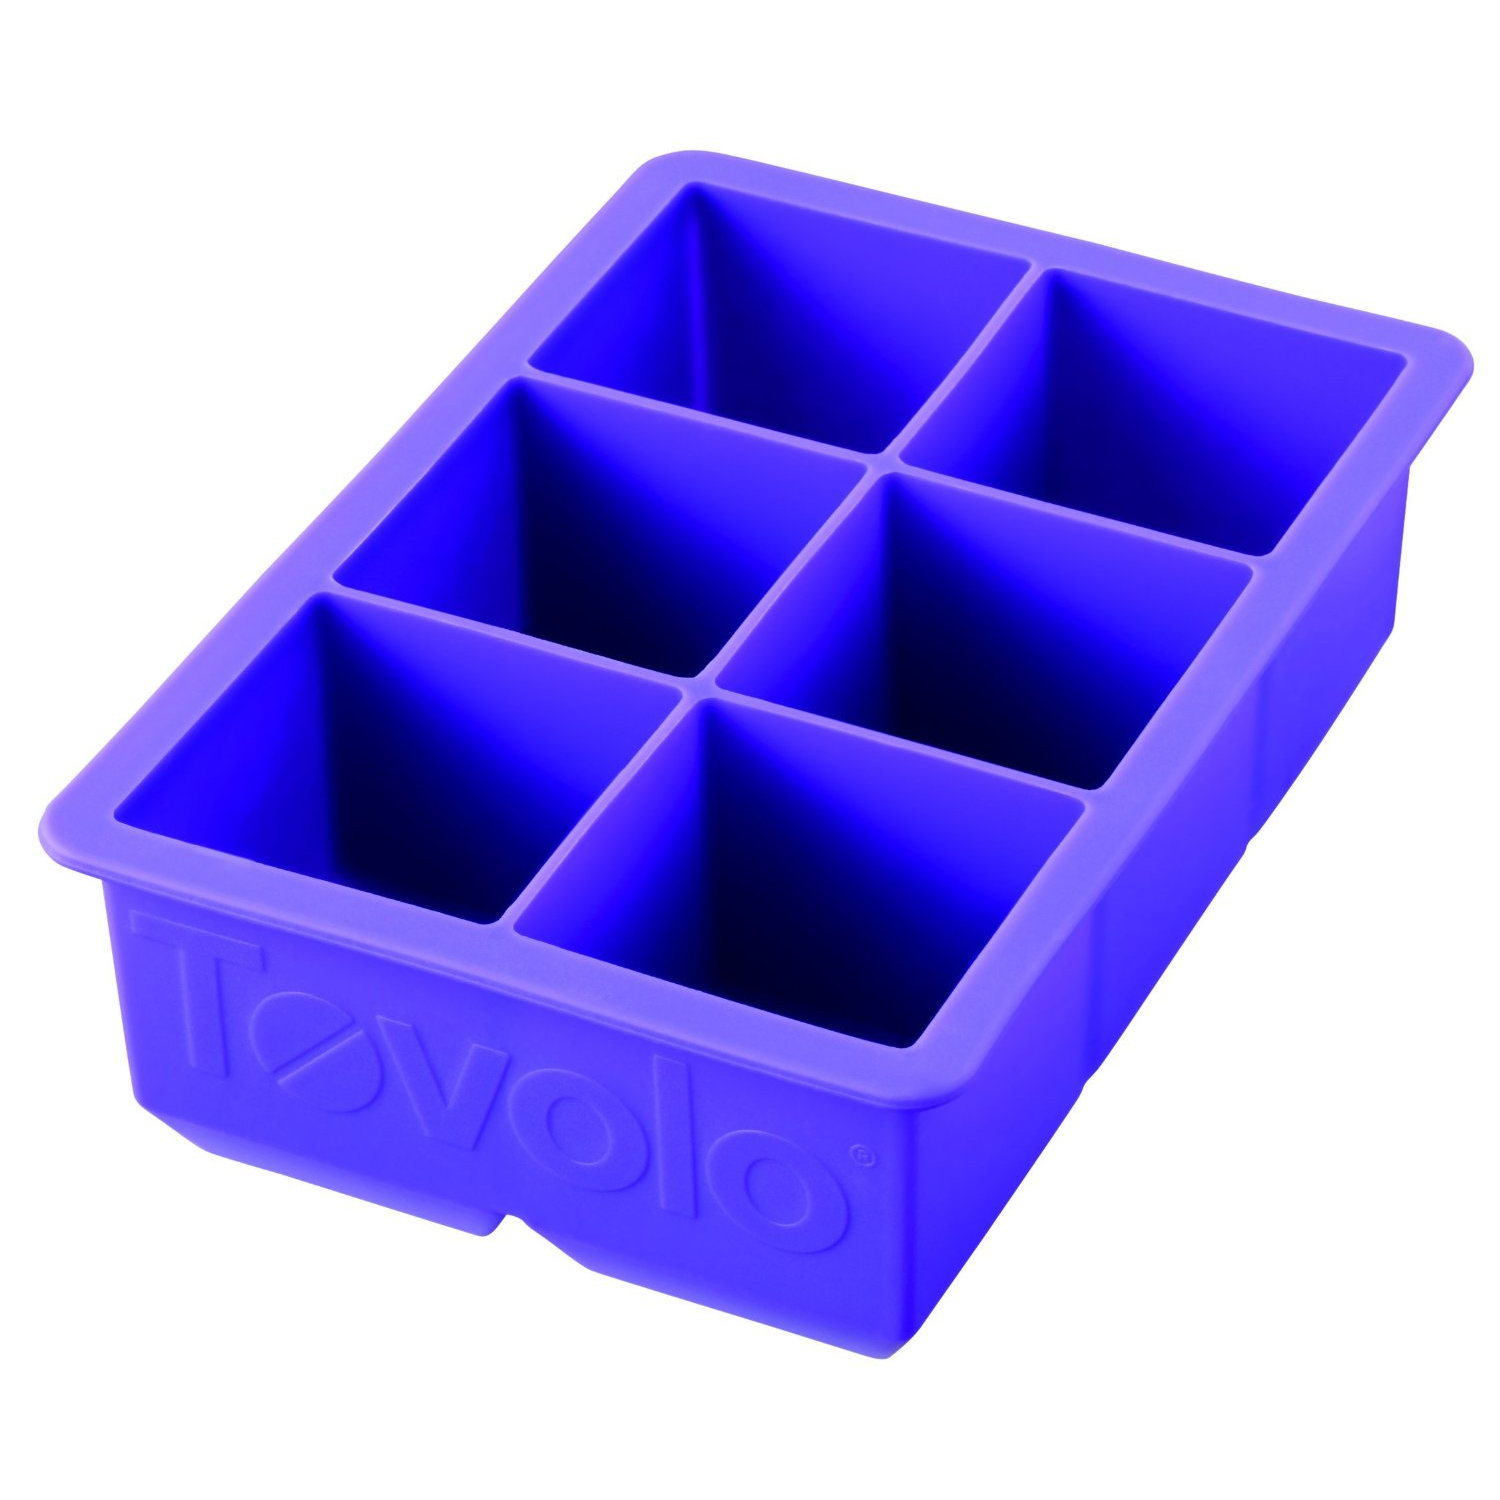 Tovolo King Cube Royal Purple Silicone Ice Tray